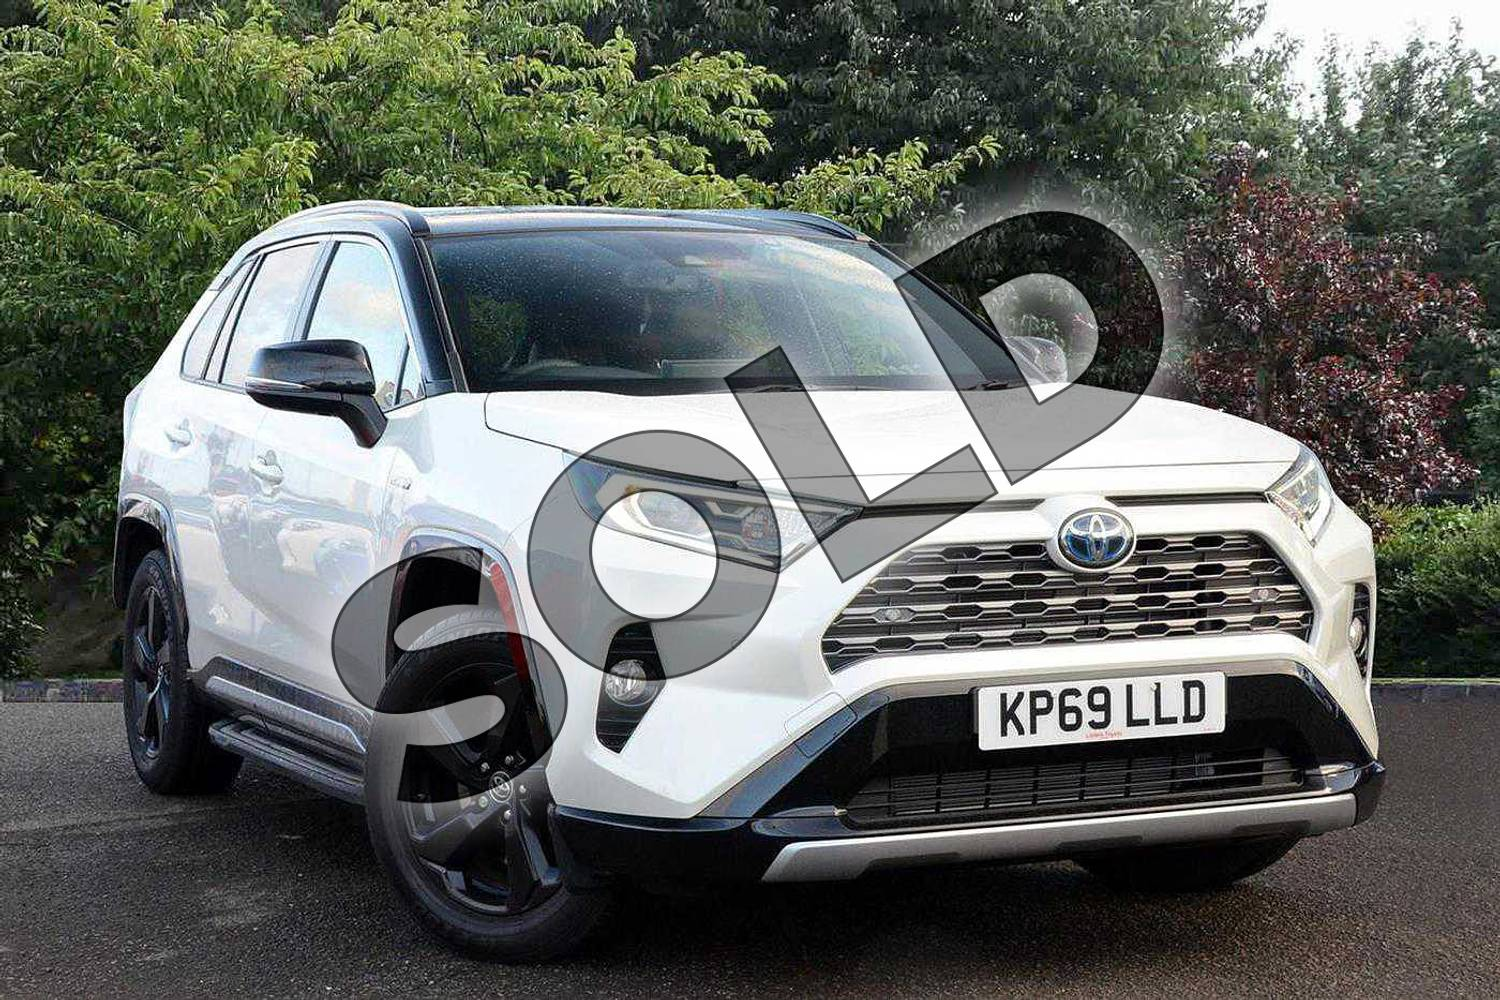 2019 Toyota RAV4 Estate 2.5 VVT-i Hybrid Dynamic 5dr CVT in White at Listers Toyota Nuneaton